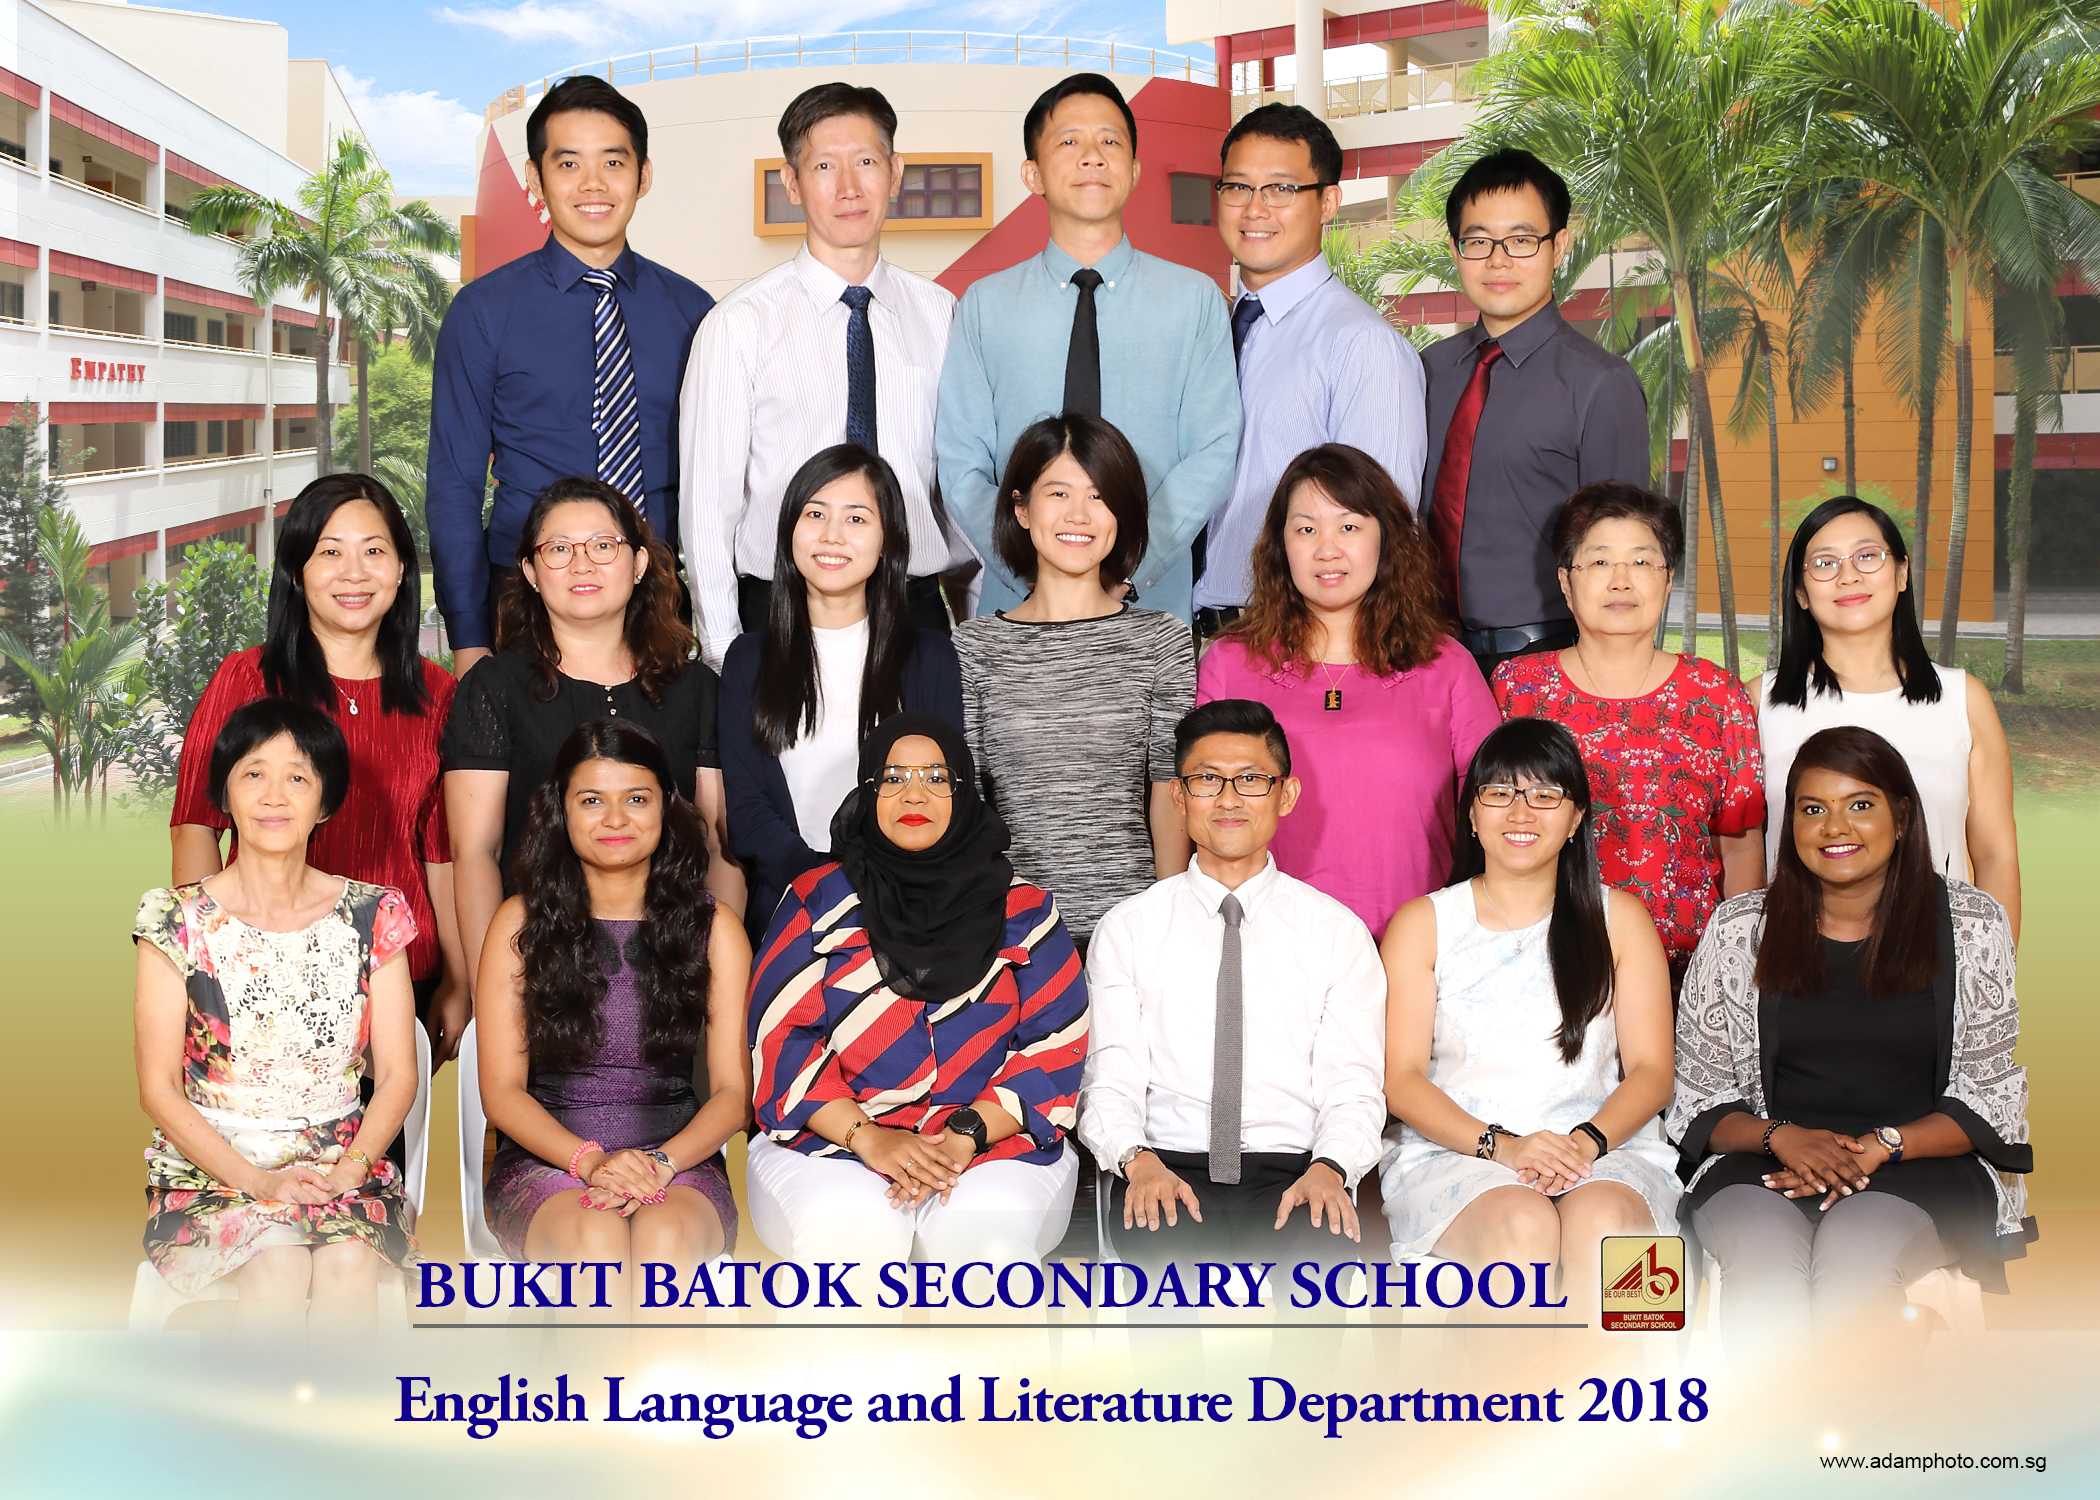 english language and literature department 2.jpg